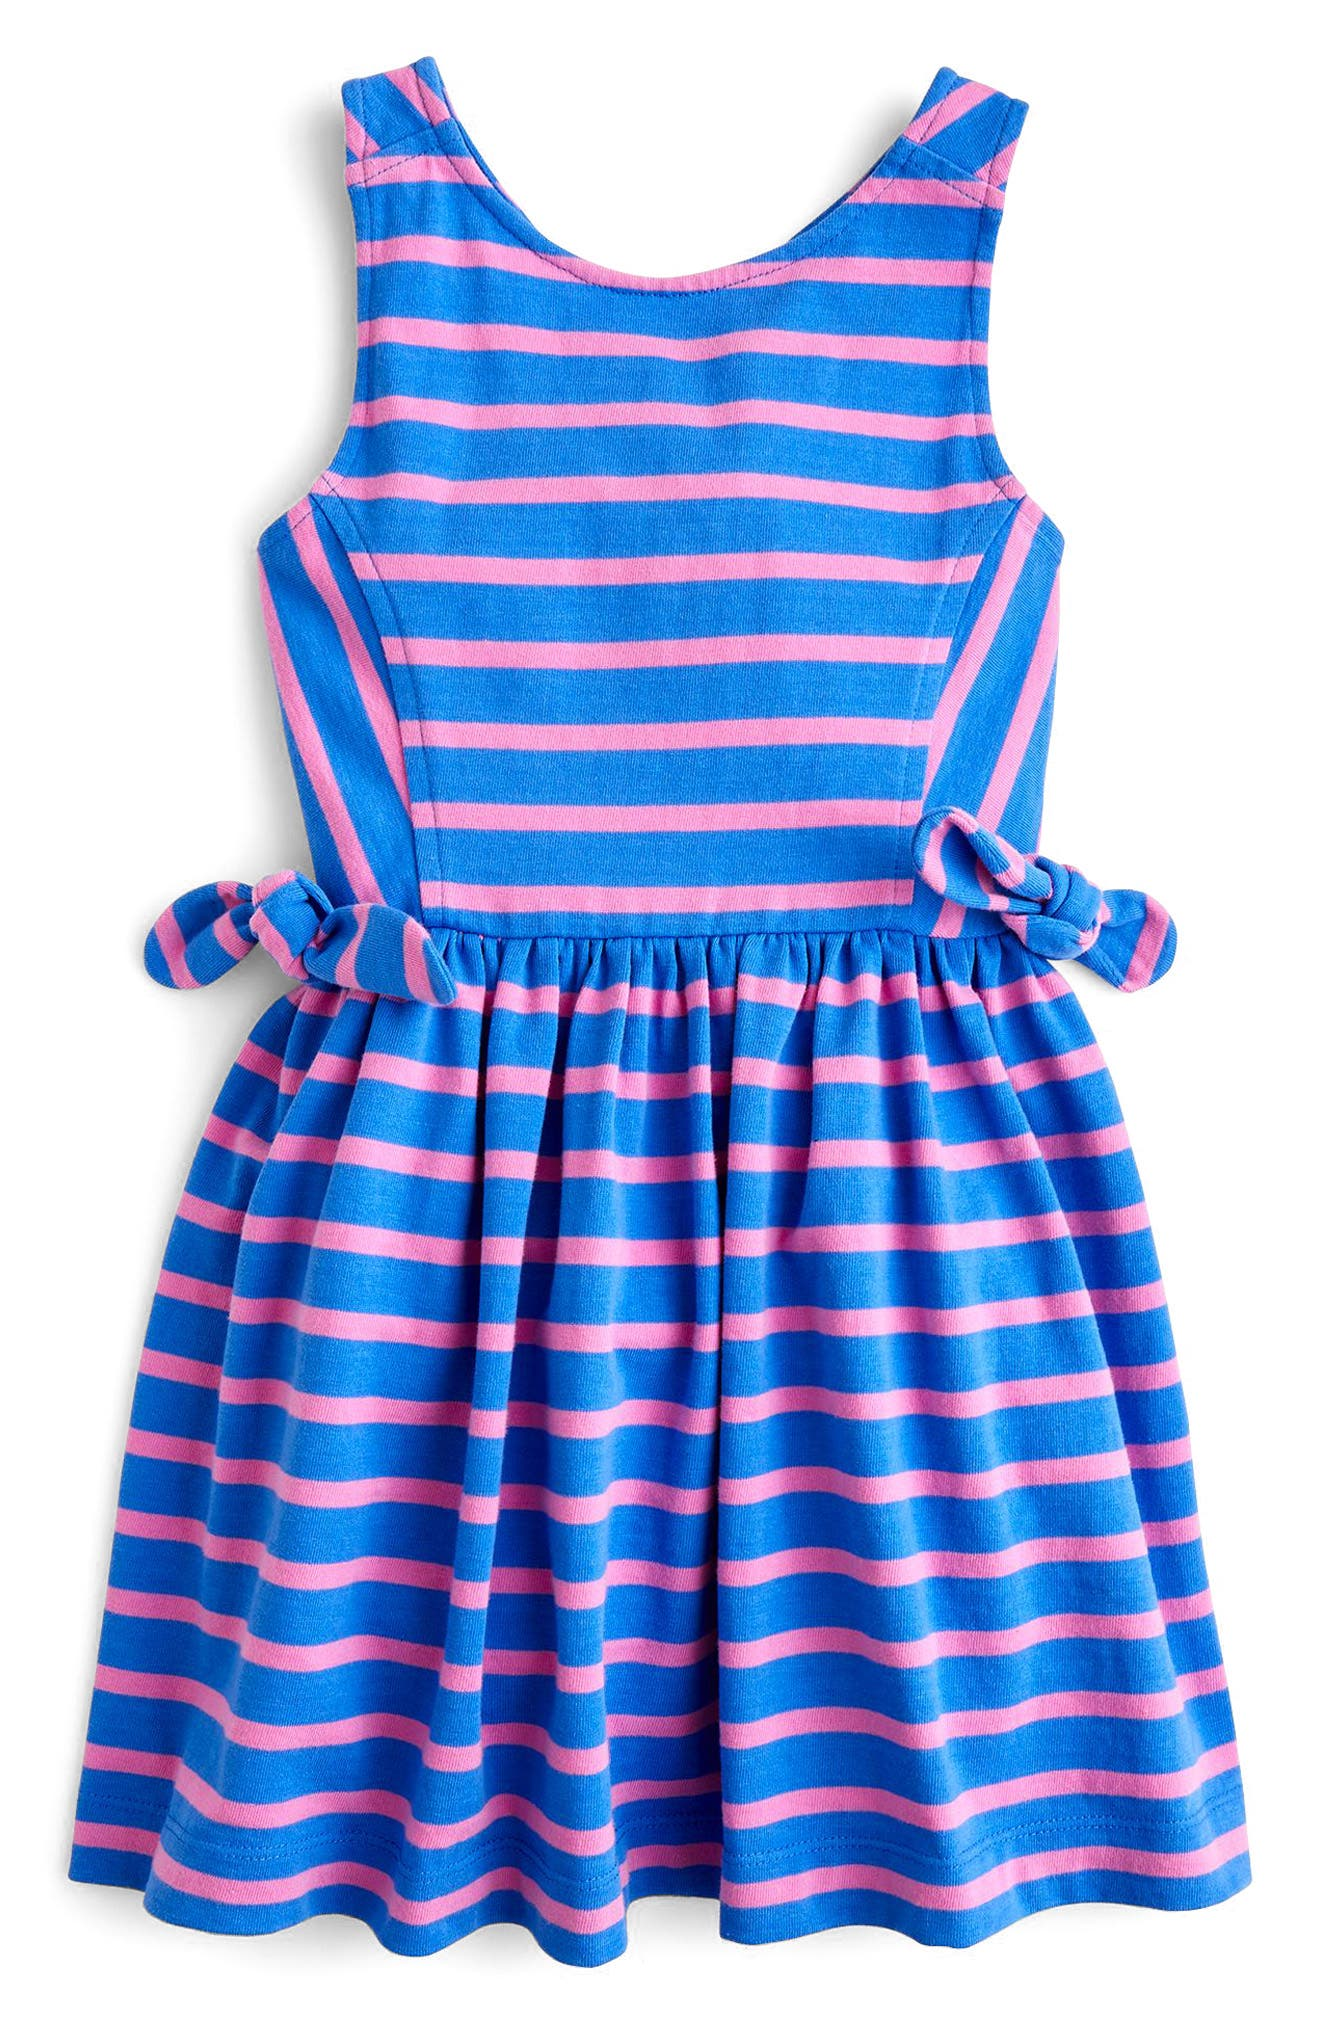 crewcuts by J. Crew Zsa Zsa Stripe Sundress (Toddler Girls, Little Girls & Big Girls)